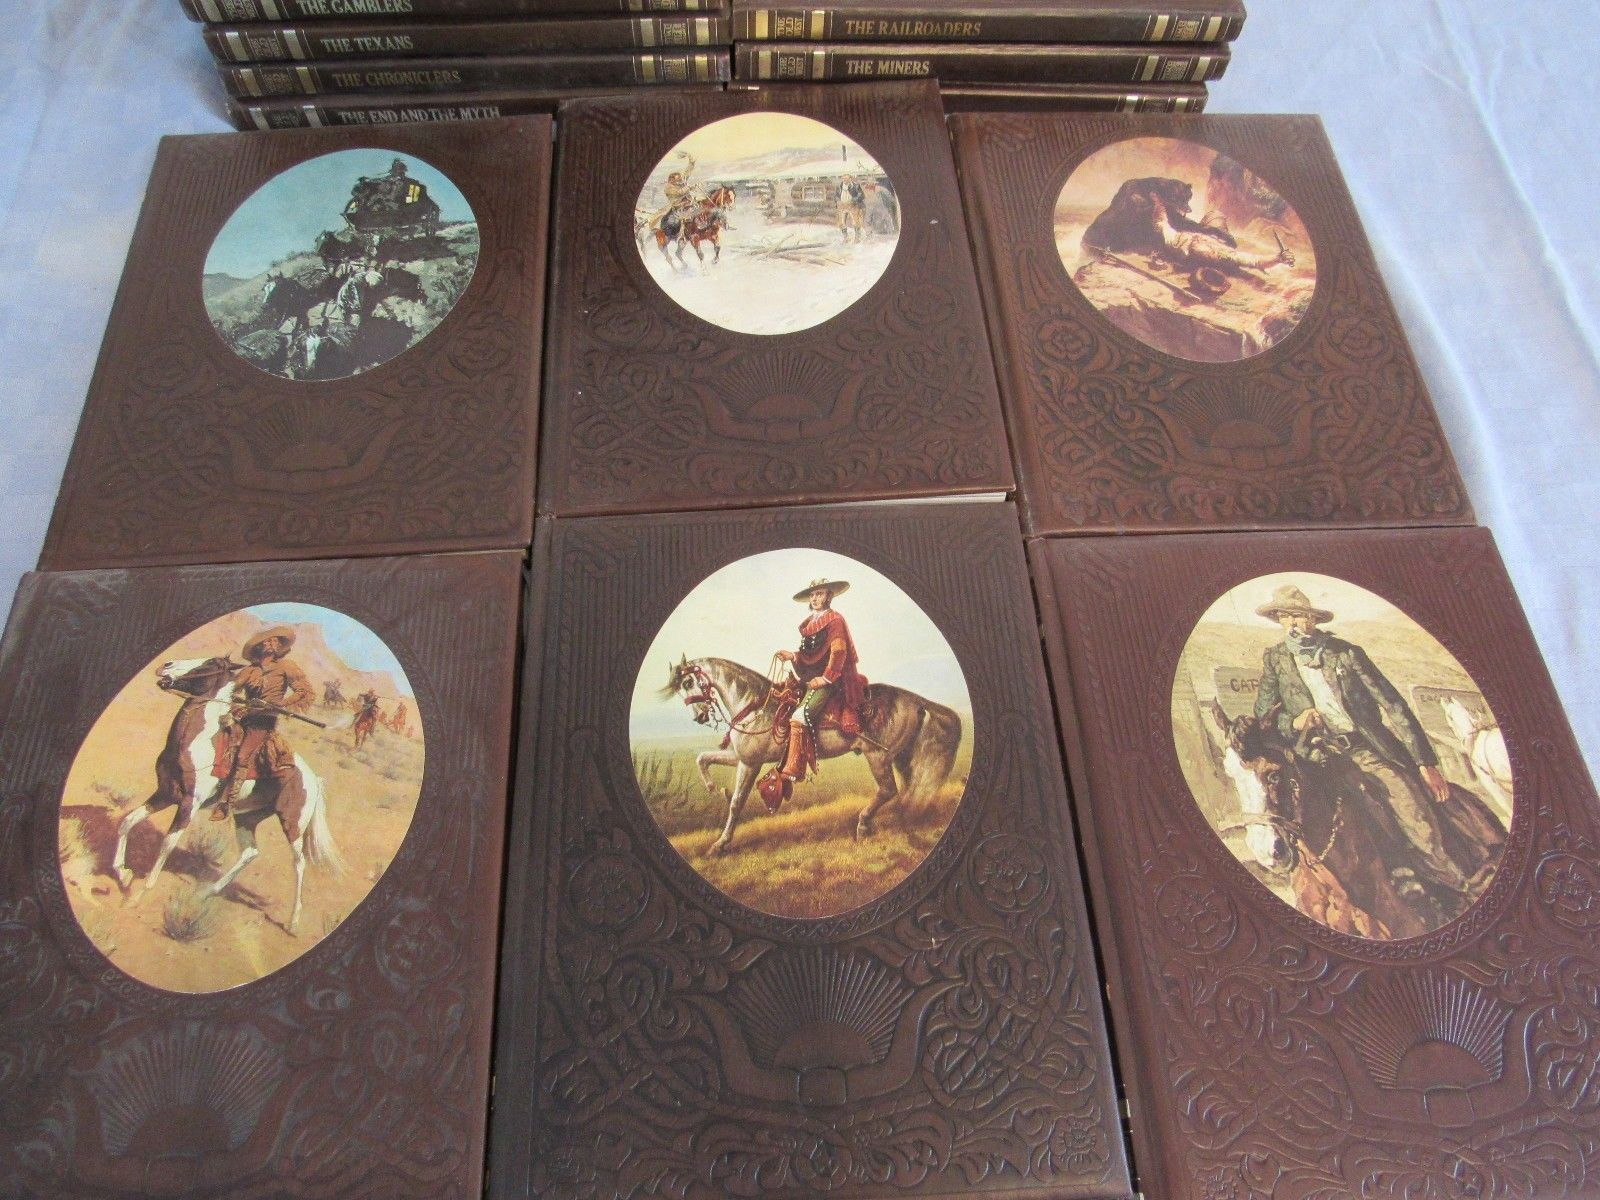 Time-Life Books The Old West Series 24 Volume Set Leatherette Covers